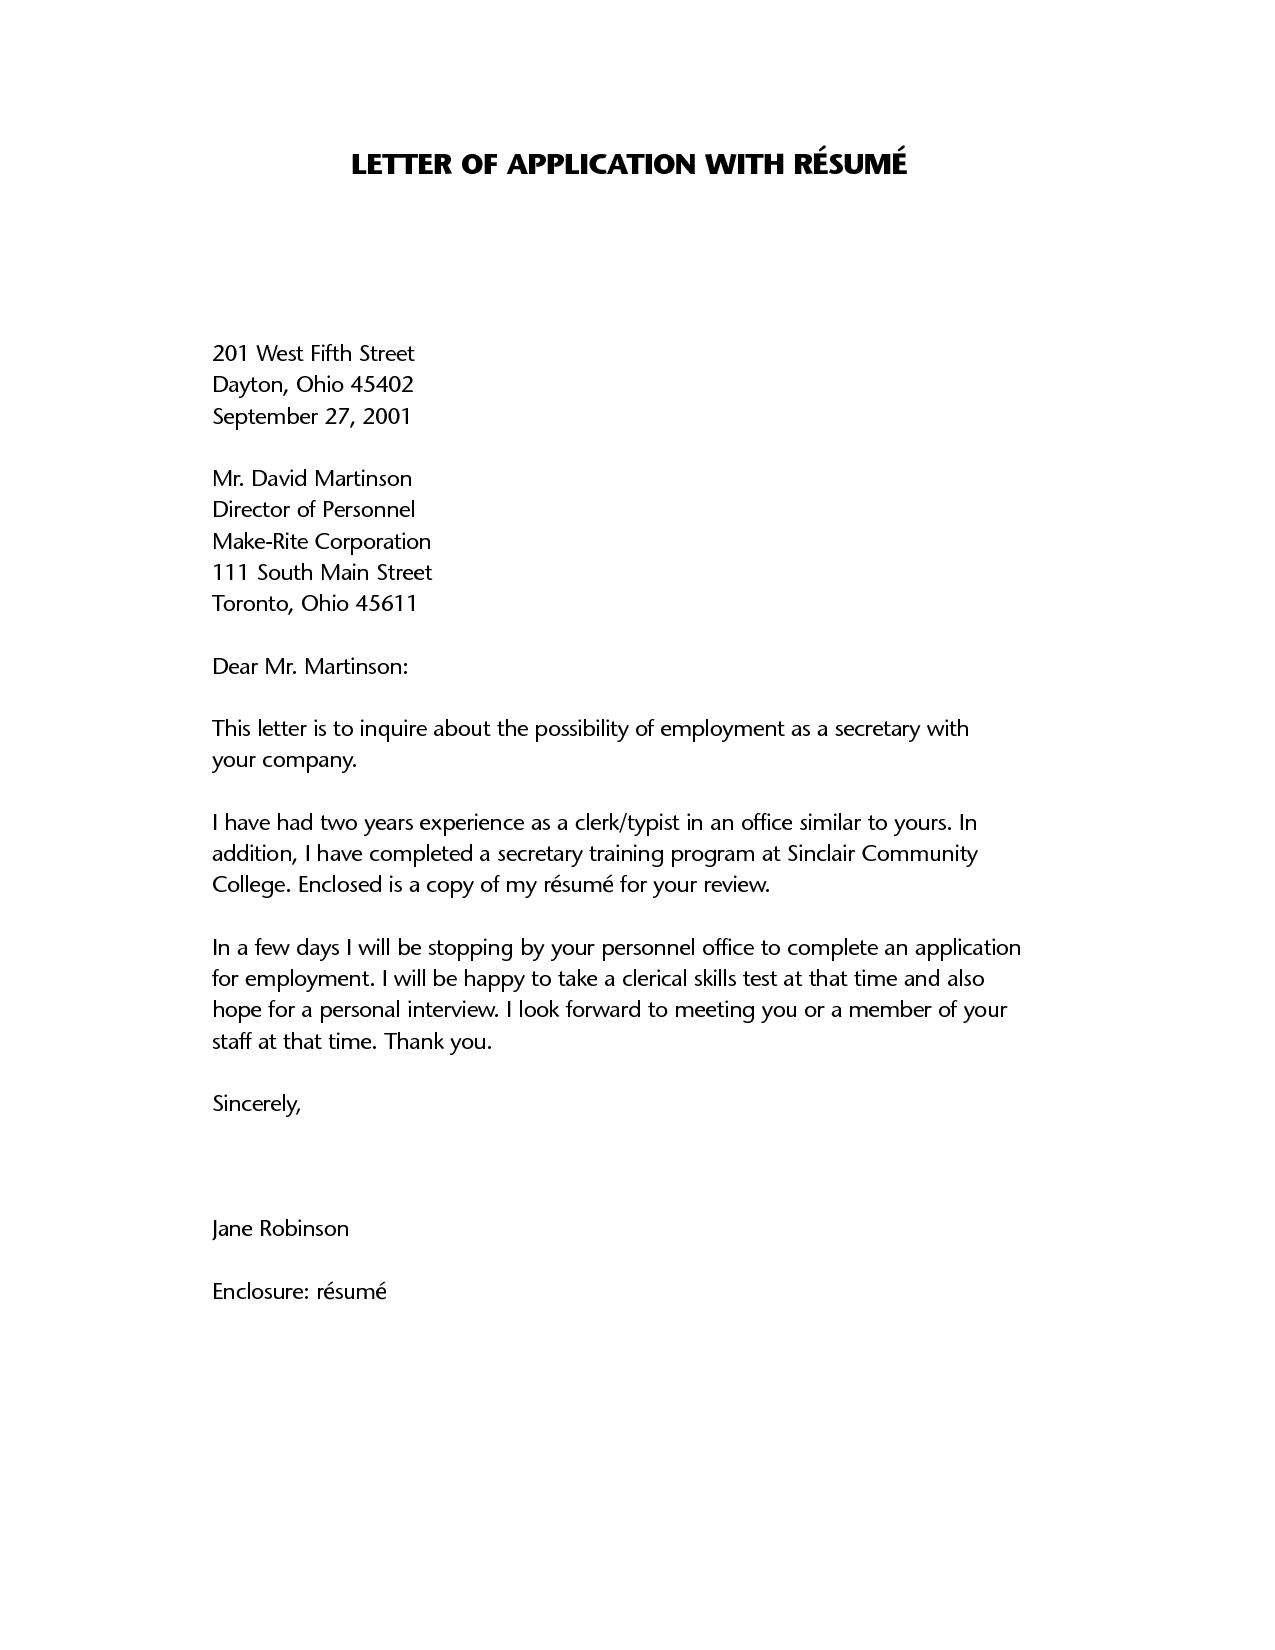 Sample Cover Letter For Resume Resume Application Letter A Letter Of Application Is A